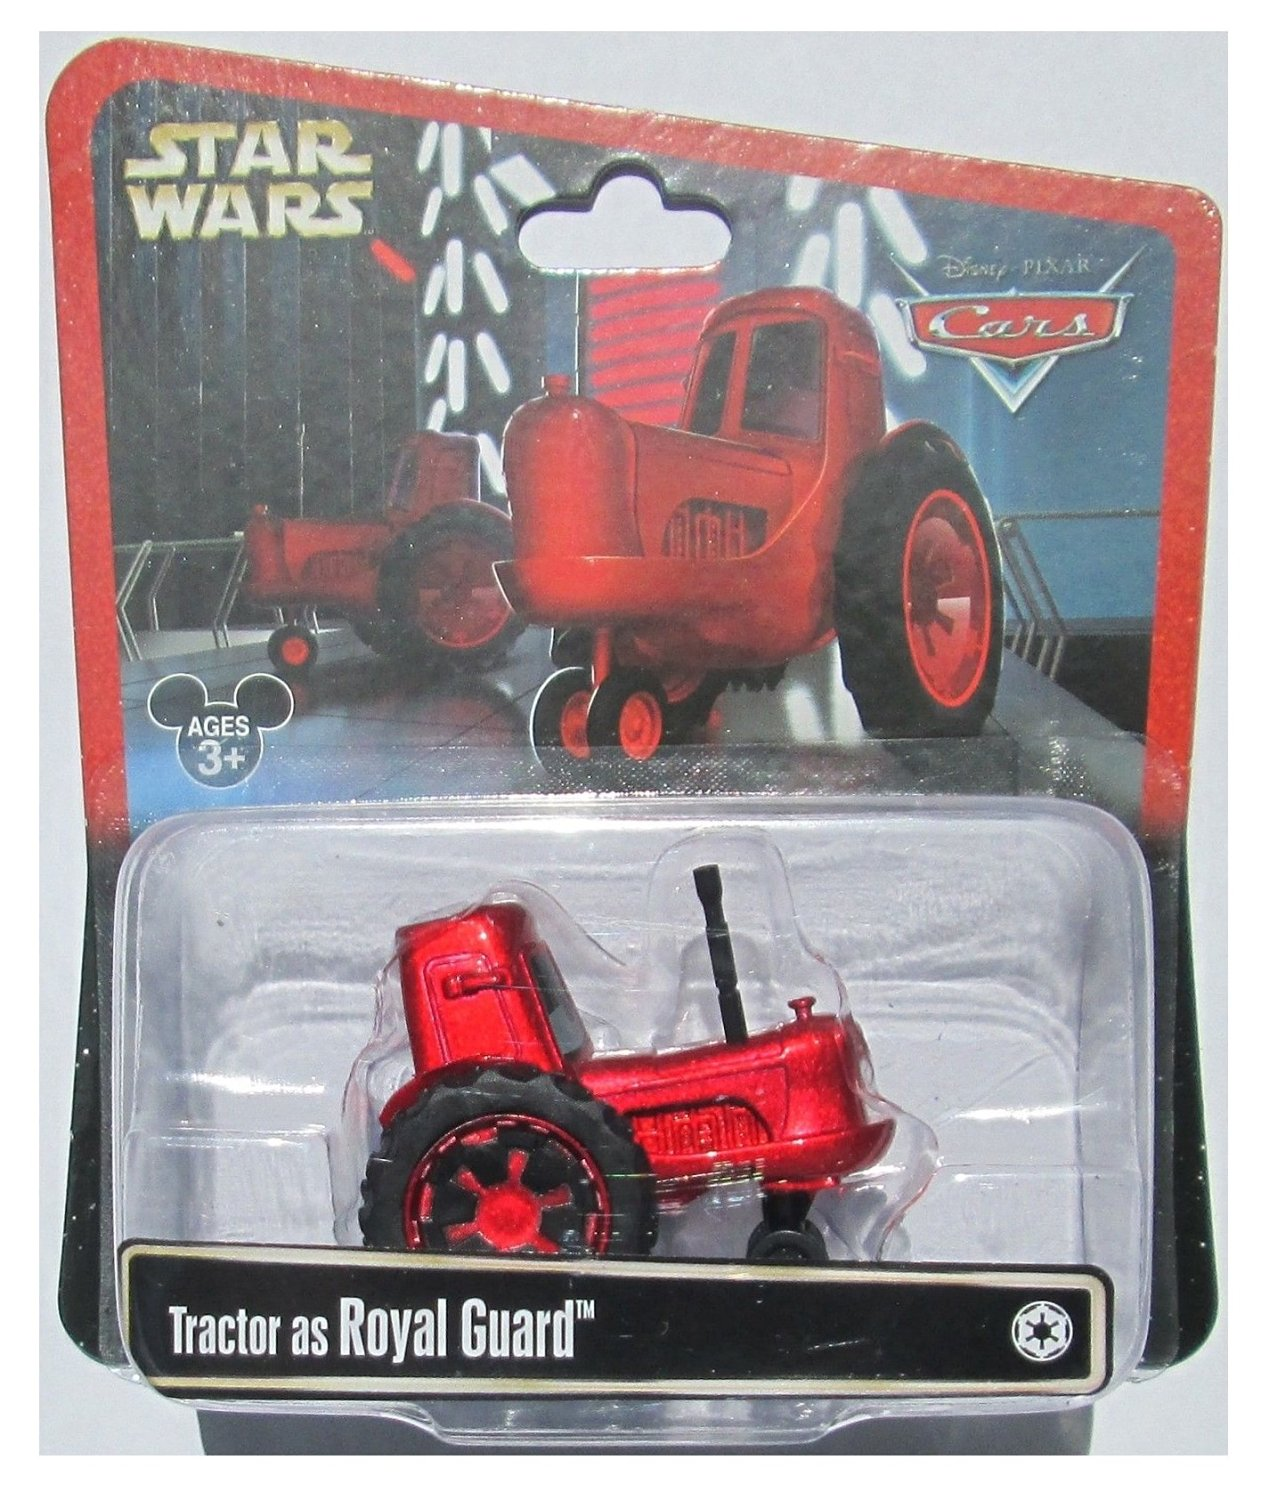 Cheap Mahindra M Star Tractor Find Deals On John Deere D130 Belt Diagram Auto Cars Price And Release Get Quotations Disney Wars Pixar As Royal Guard 1 55 Die Cast Series